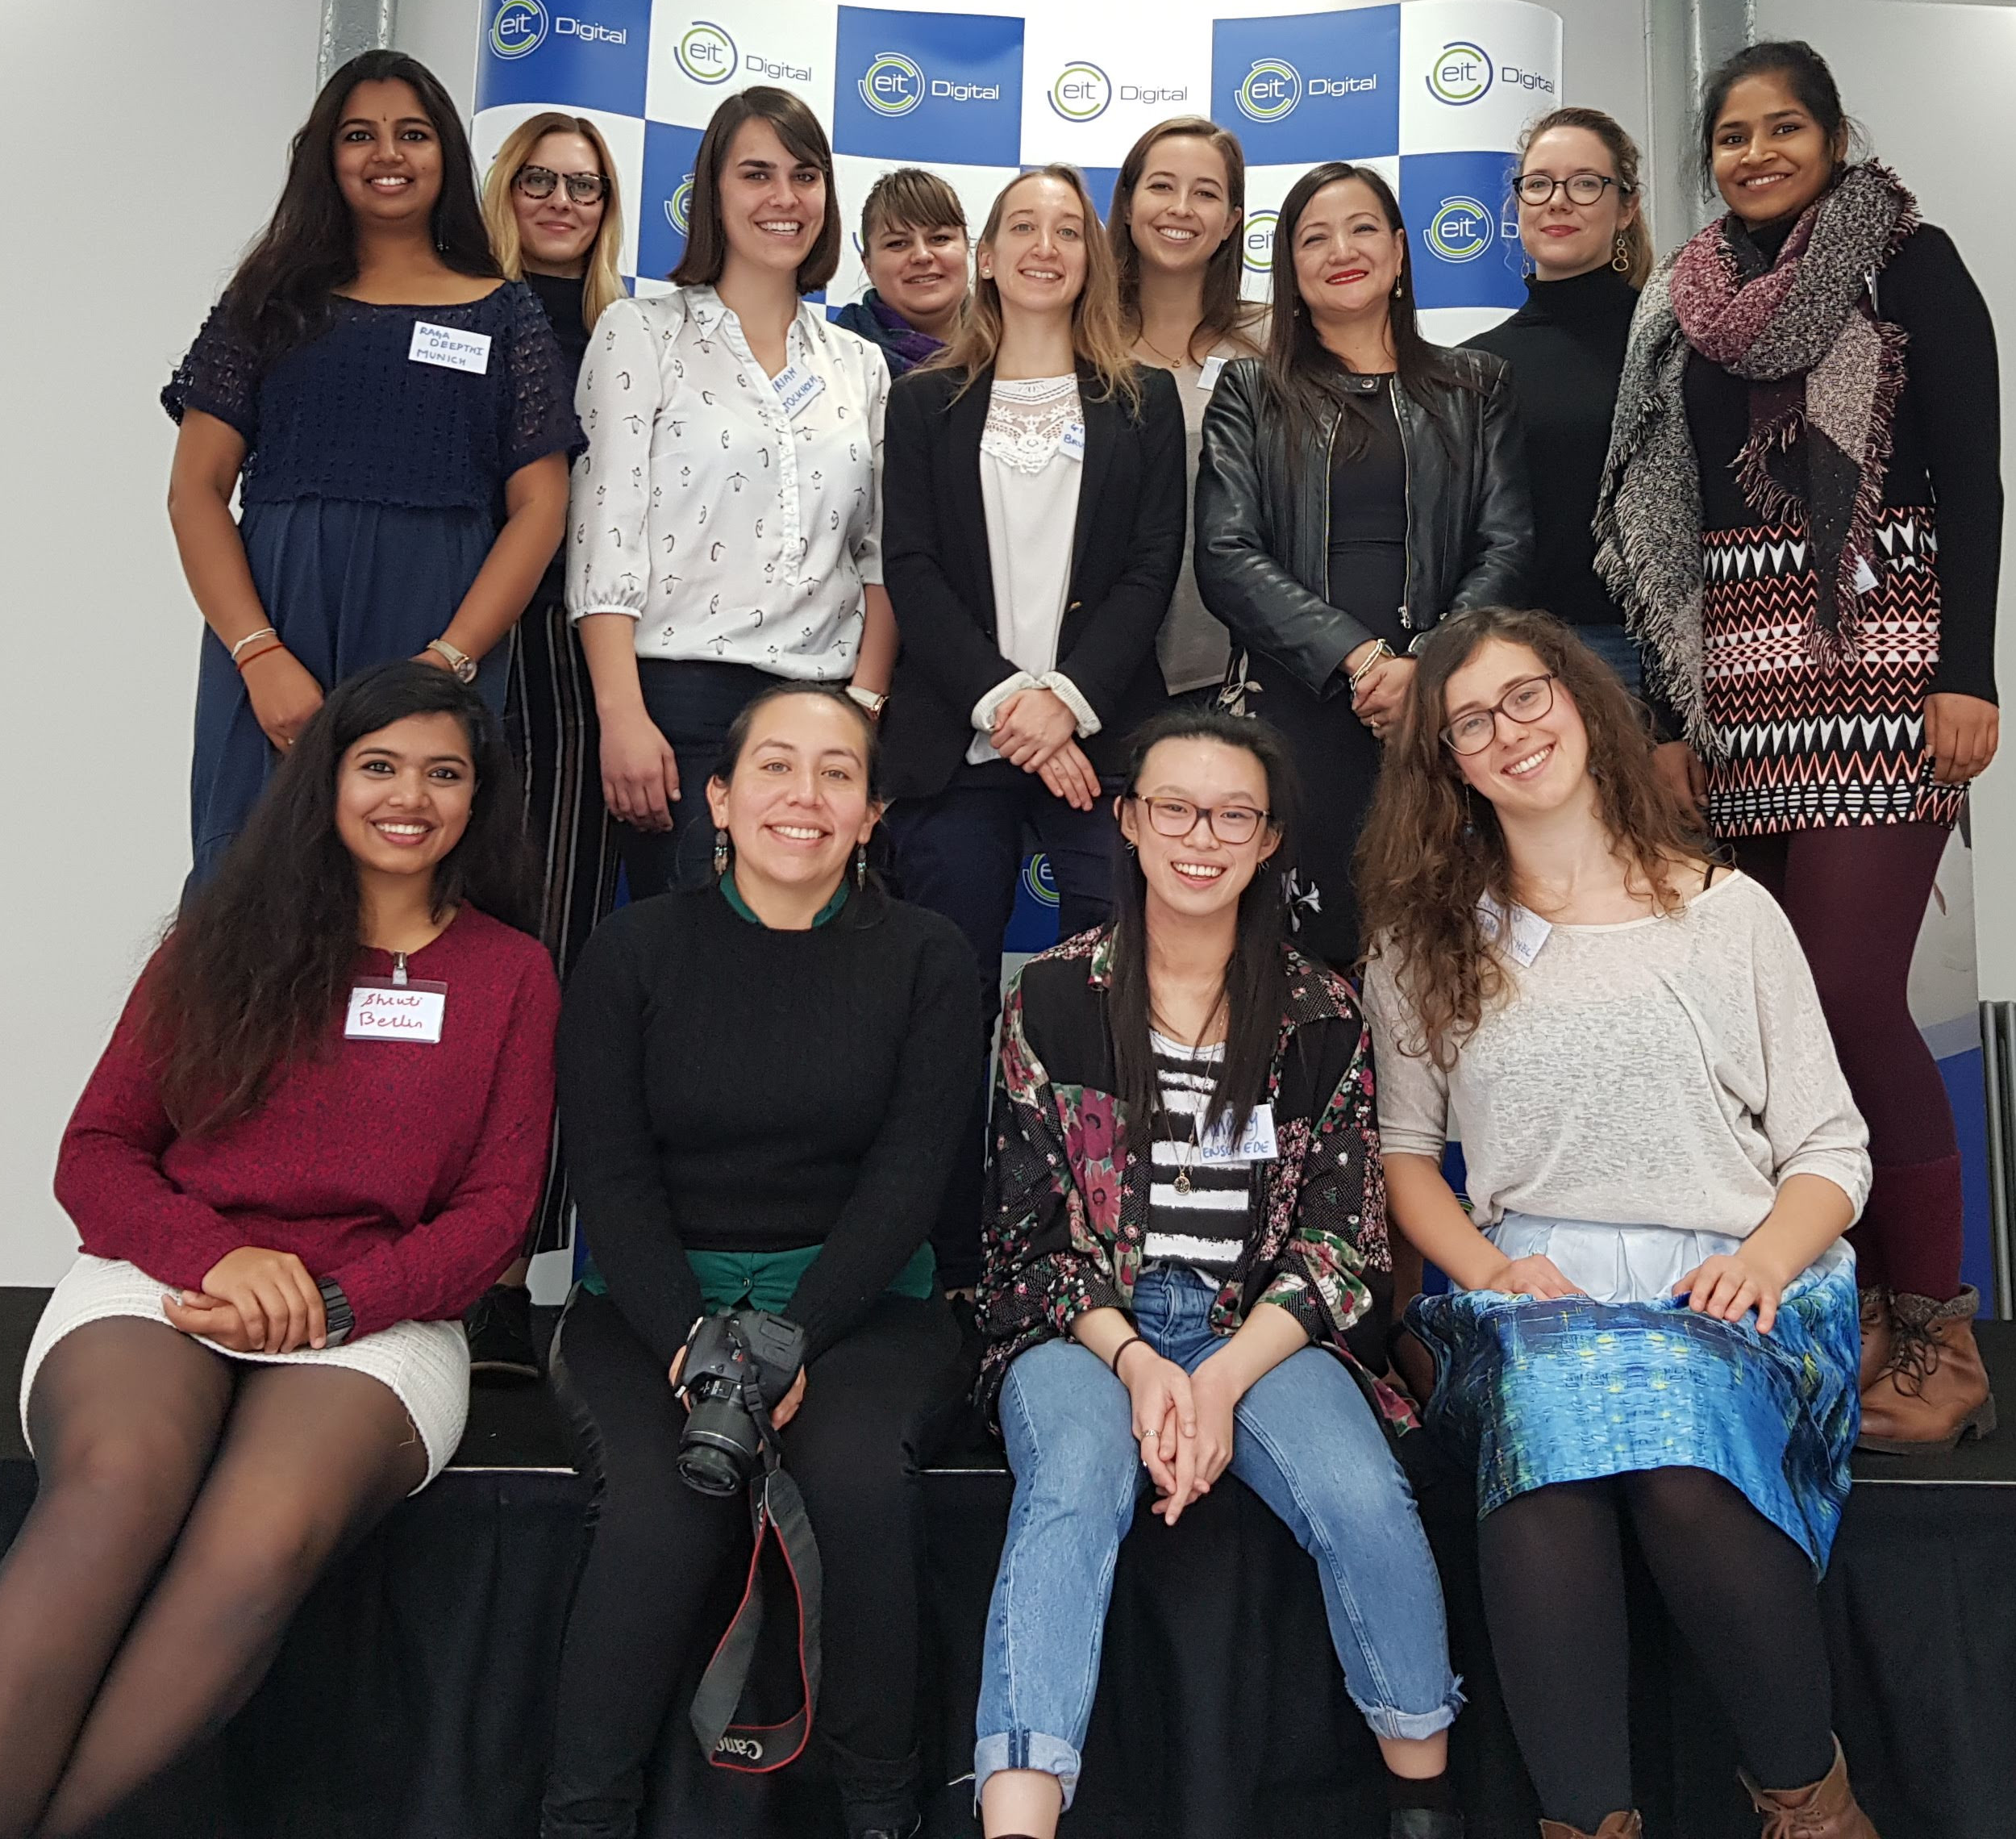 Women at Eit Group Picture, some members of our community